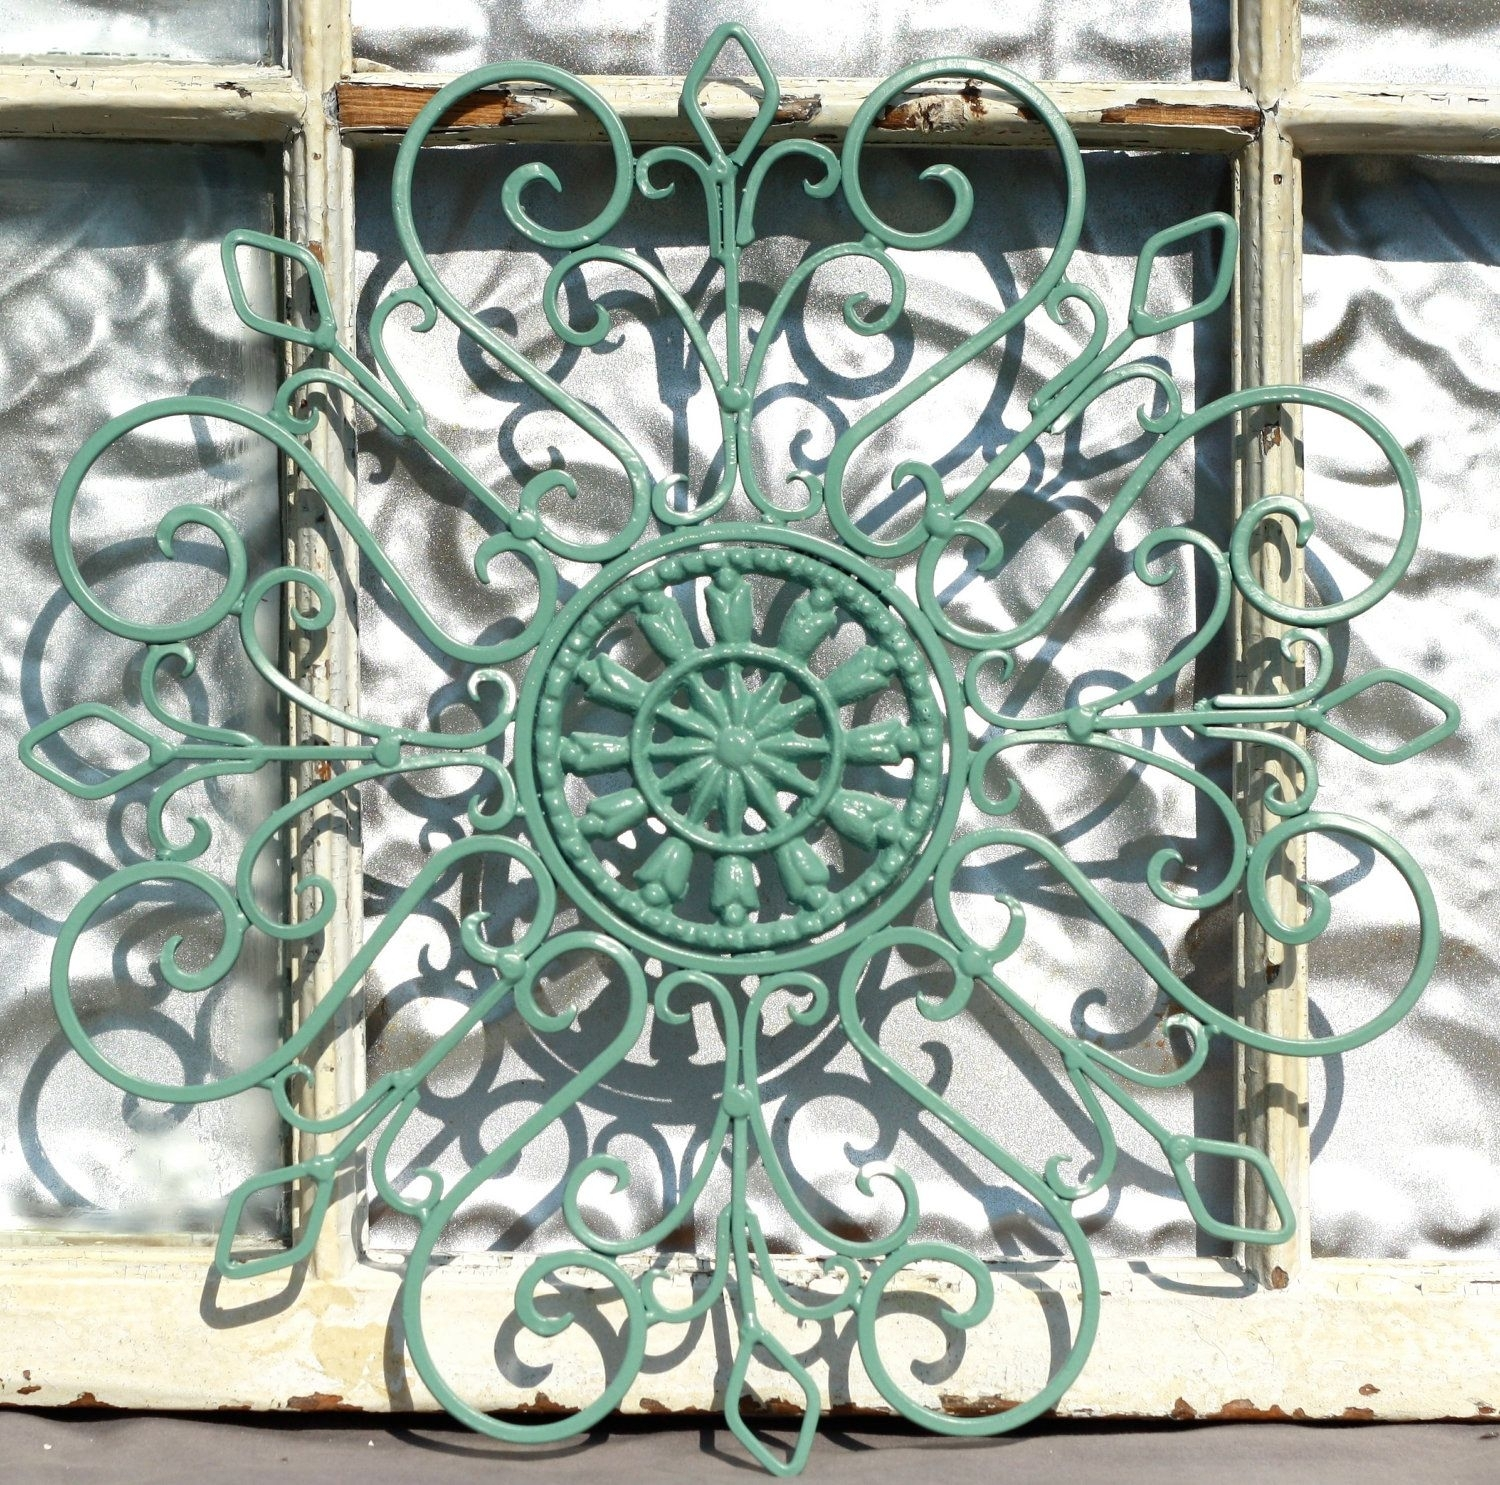 Wrought Iron Wall Decor/ Metal Wall Hanging/ Indoor/ Outdoor Metal With Regard To Best And Newest Metal Outdoor Wall Art (Gallery 10 of 20)